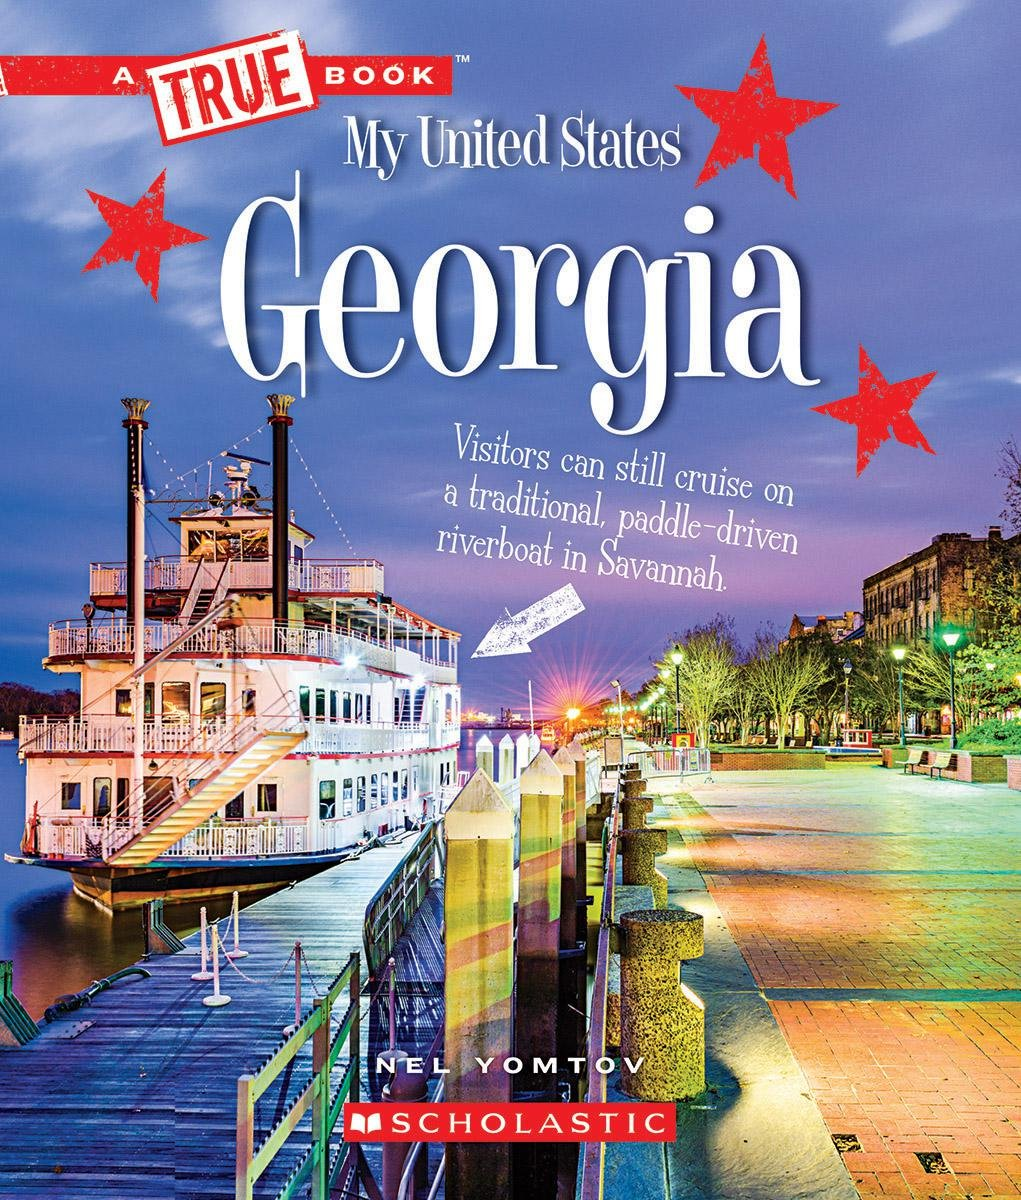 Georgia (True Book My United States) PDF